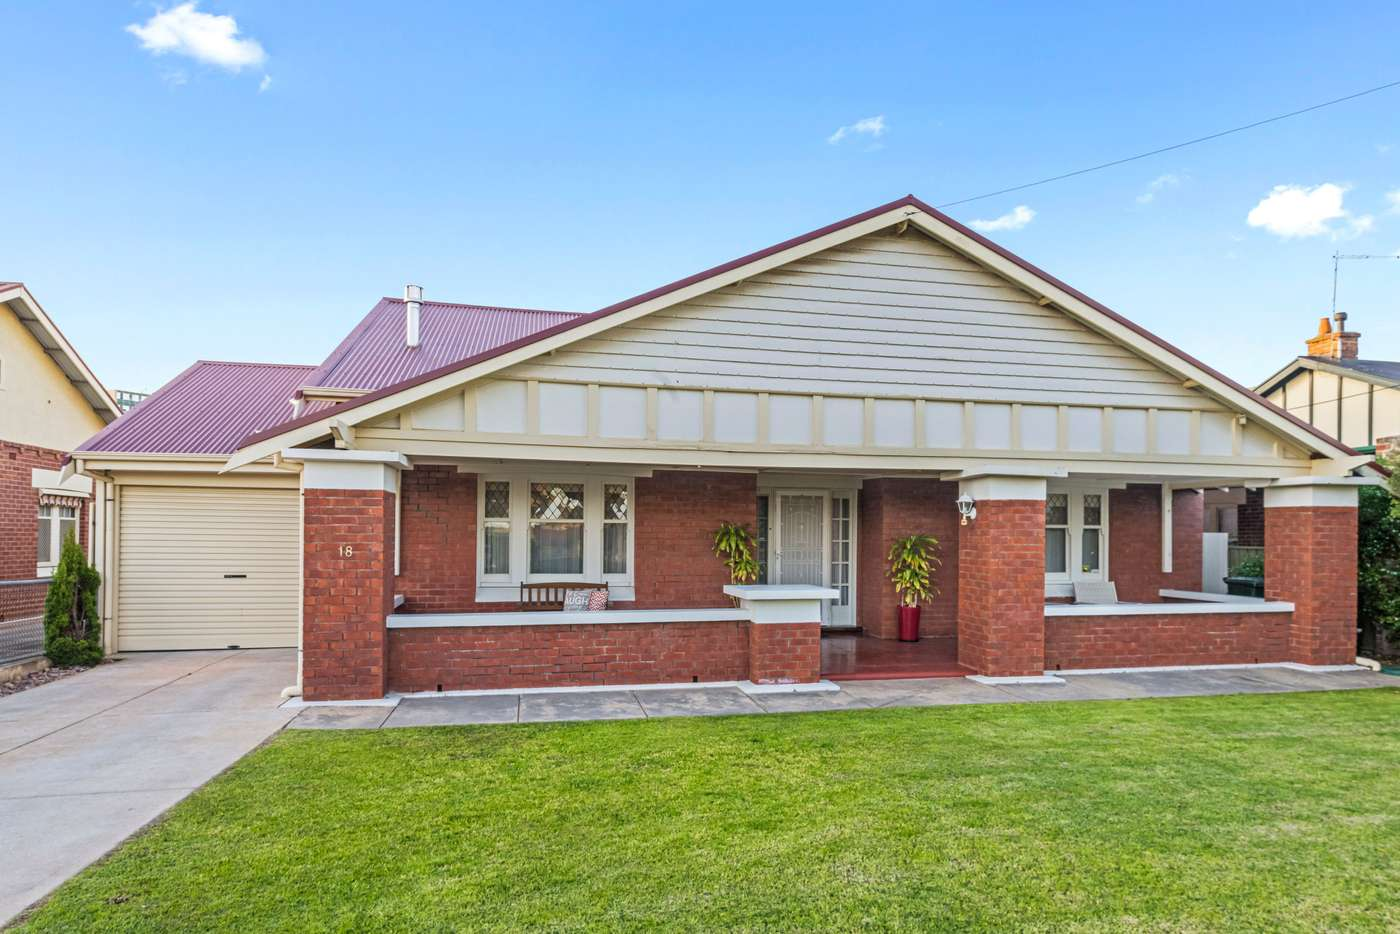 Main view of Homely house listing, 18 Glengarry Street, Woodville South SA 5011